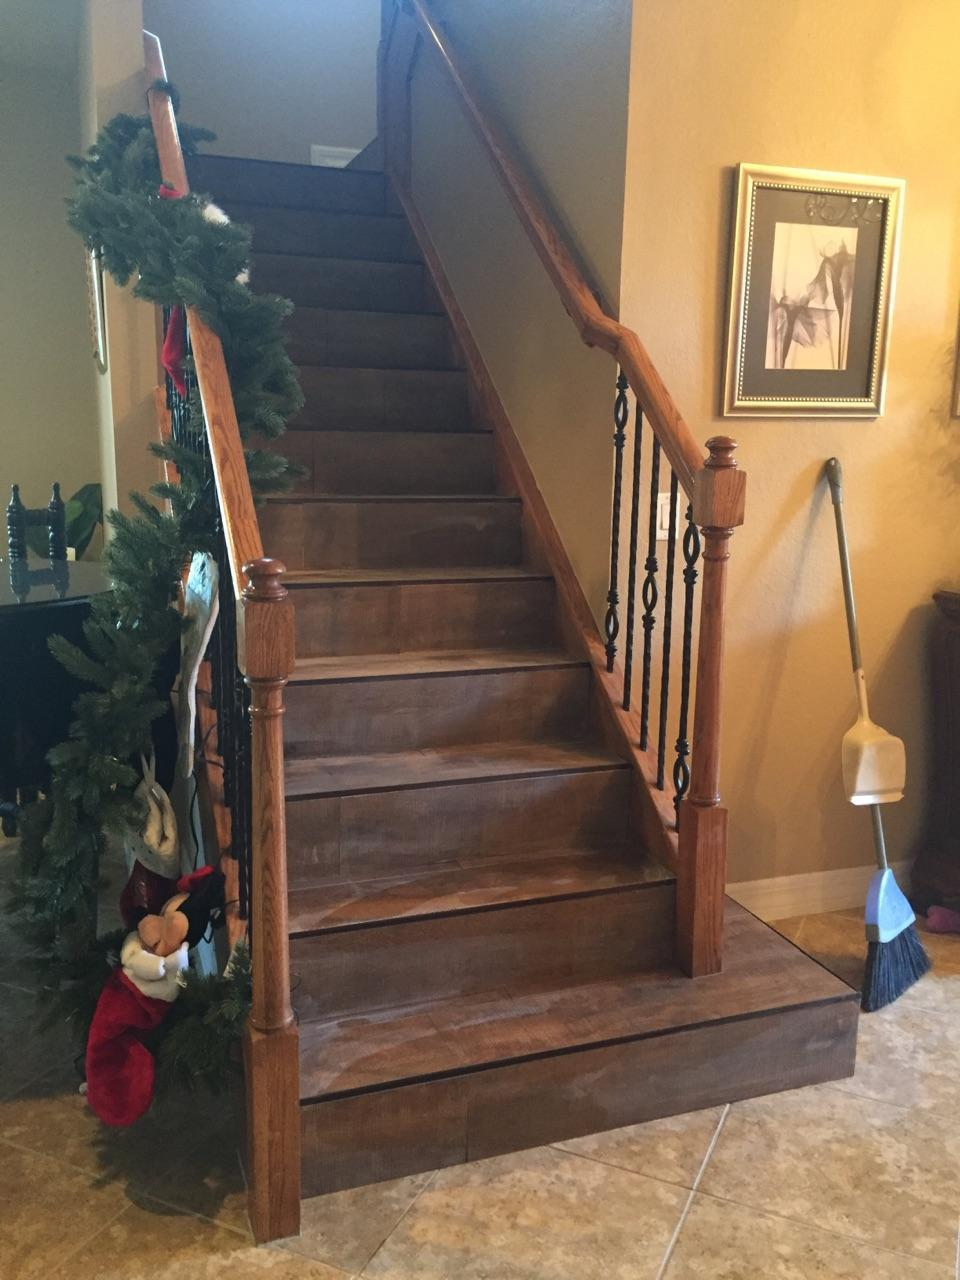 Wood tile on stairs